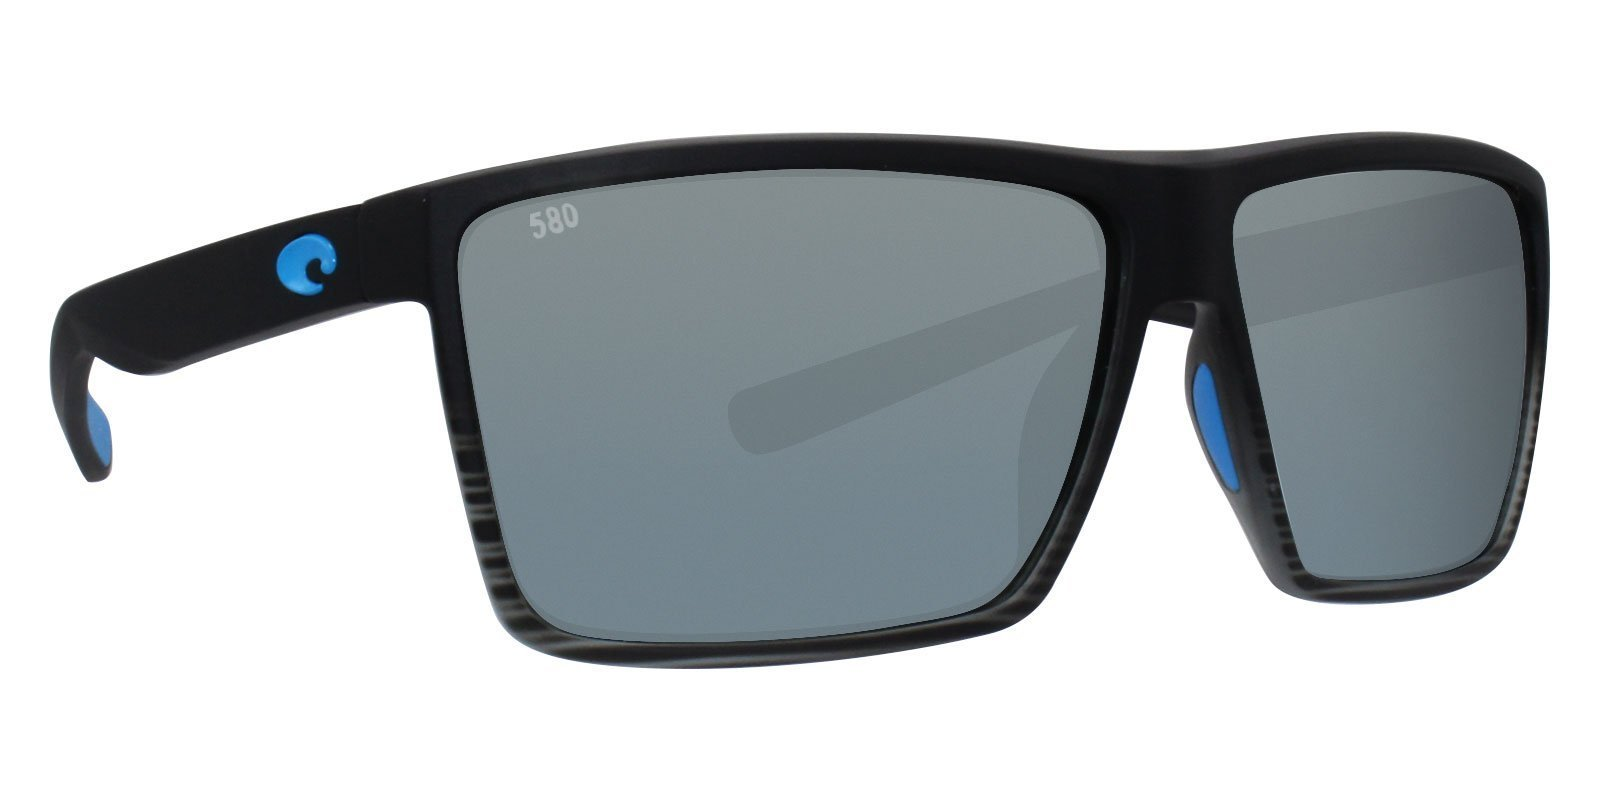 ec784433e9 costa-del-mar-sunglasses-costa-del-mar -rincon-black-gray-designer-eyes-97963666107-2